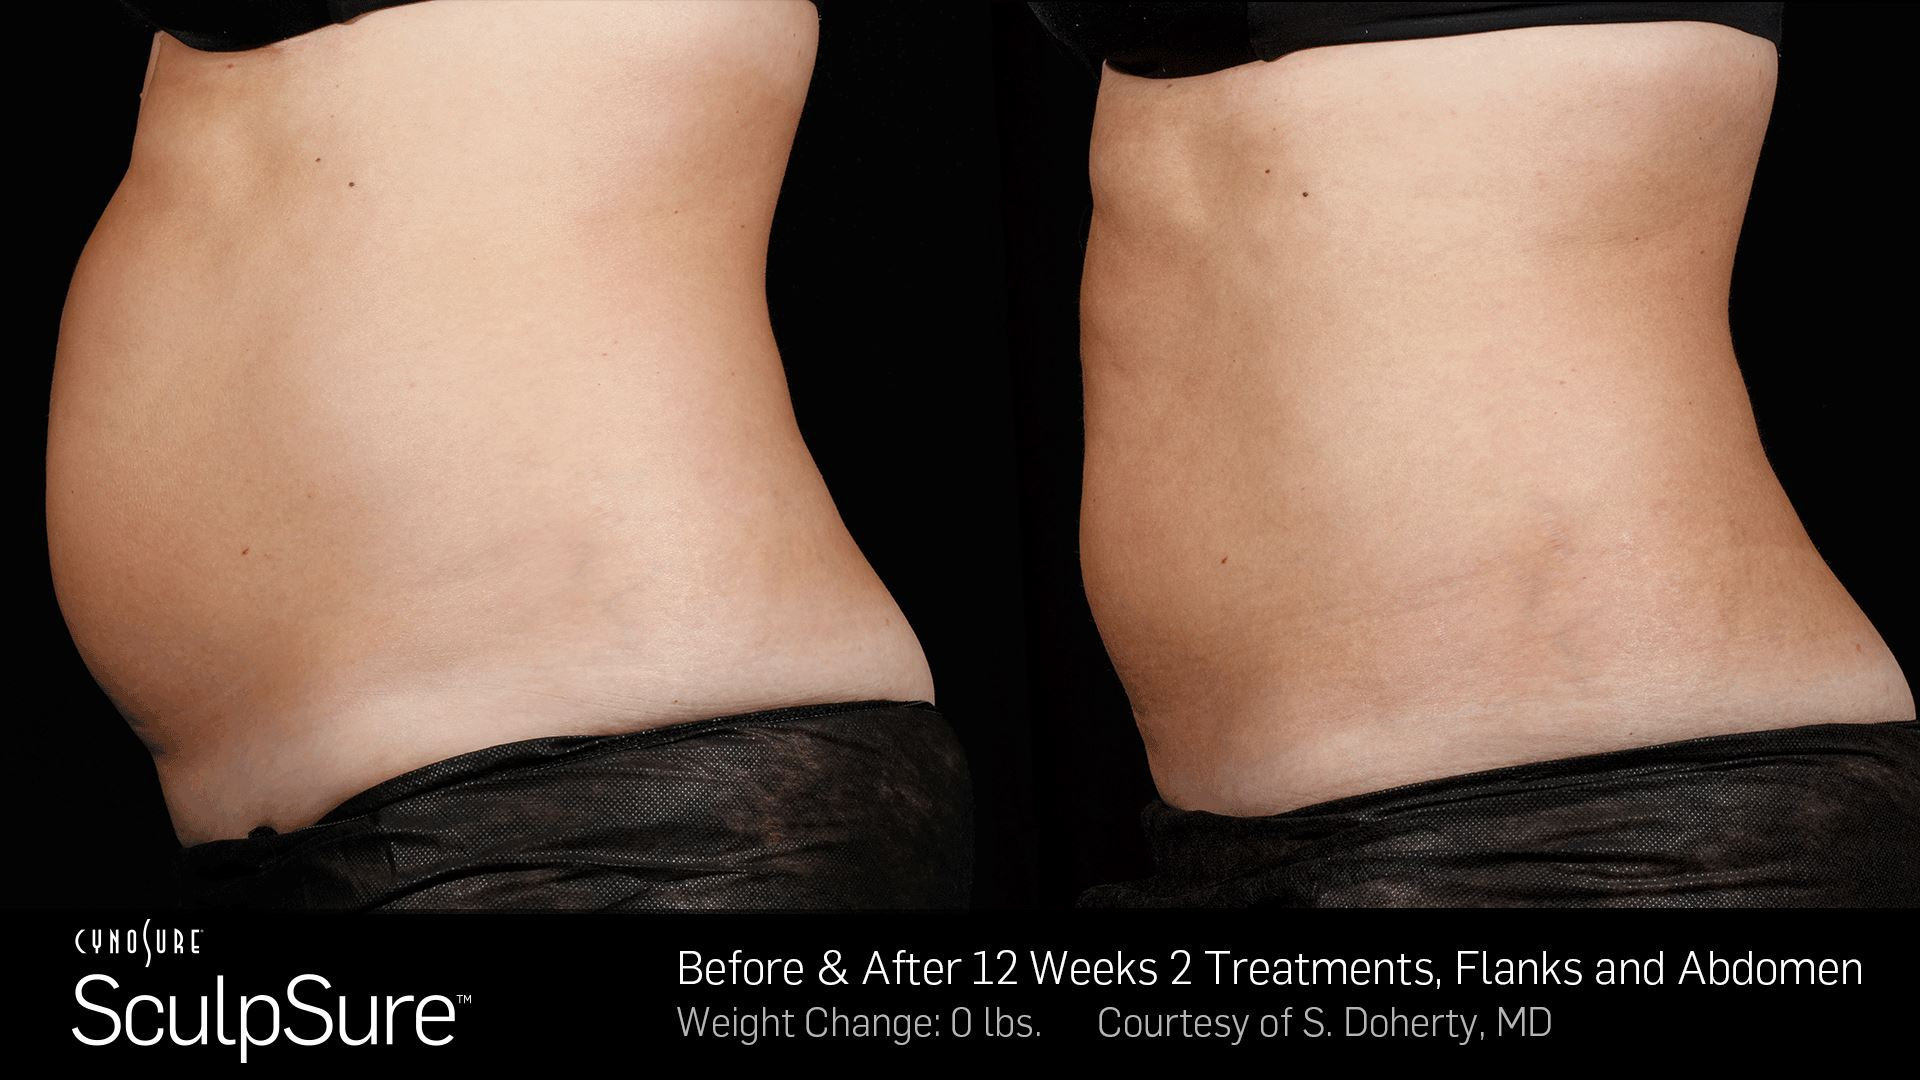 SculpSure - Before and After 12 weeks 2 treatments, Flanks and Abdomen